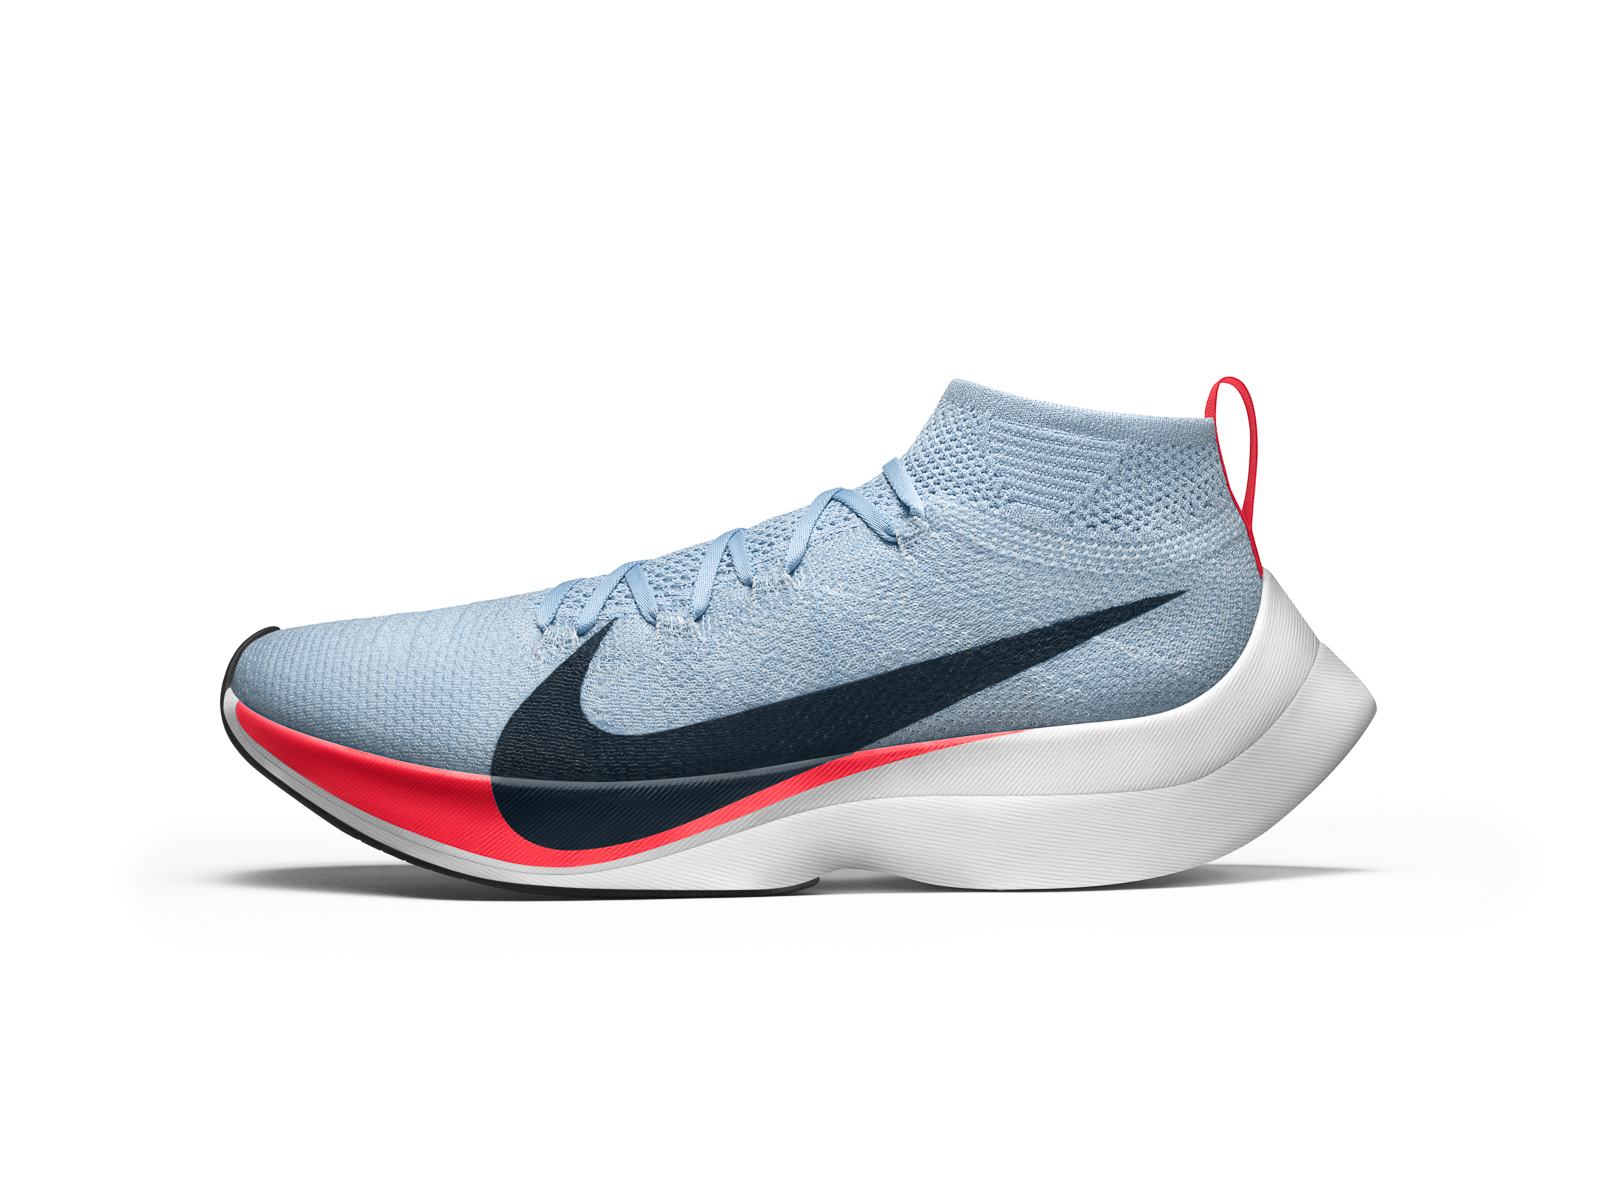 1e92d850b Nike s sub-two-hour marathon shoe doesn t look the way you think it should